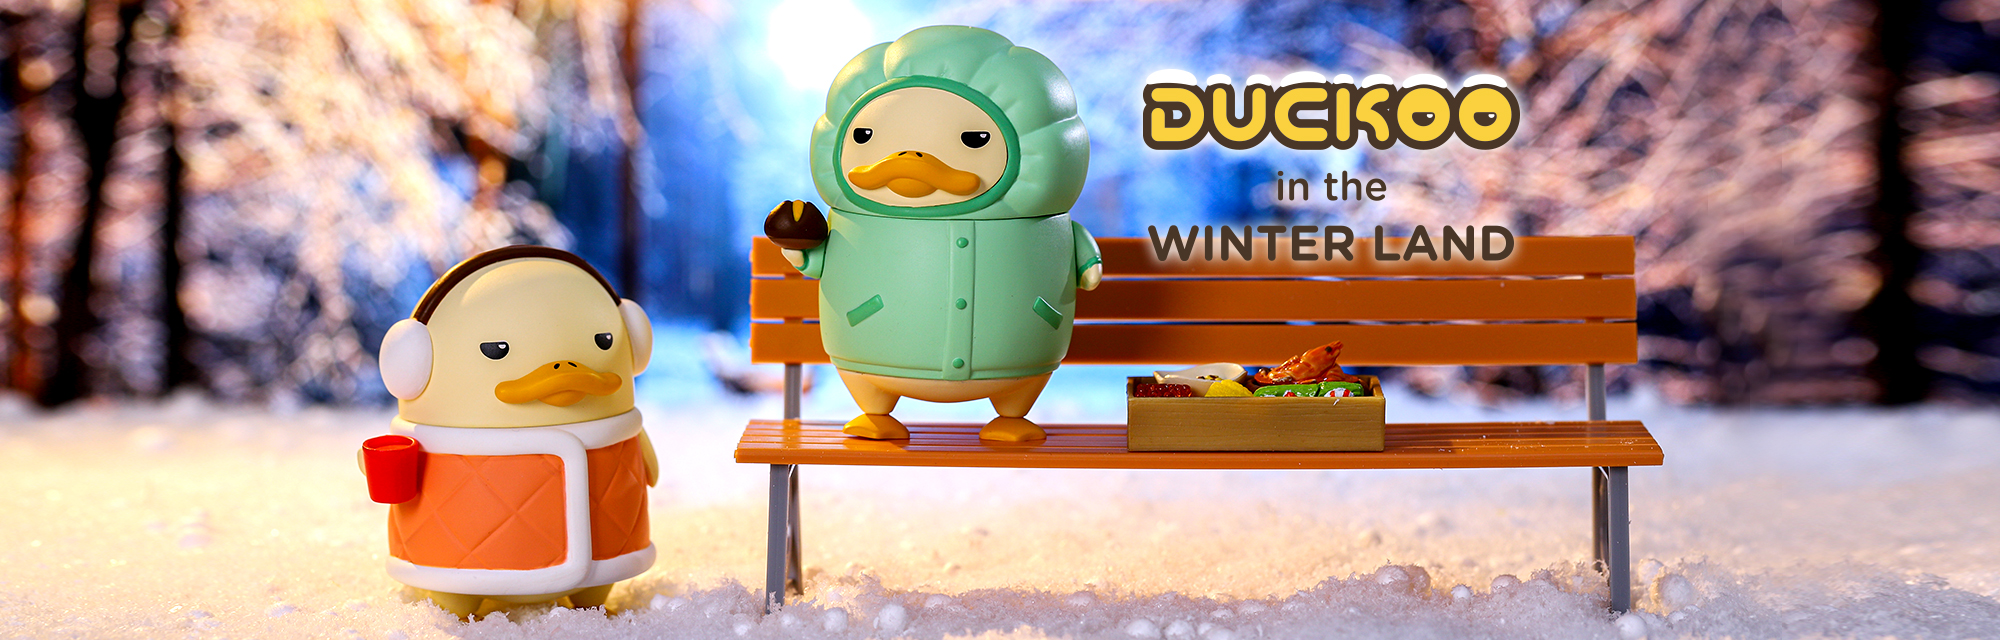 Duckoo in the Winter Land